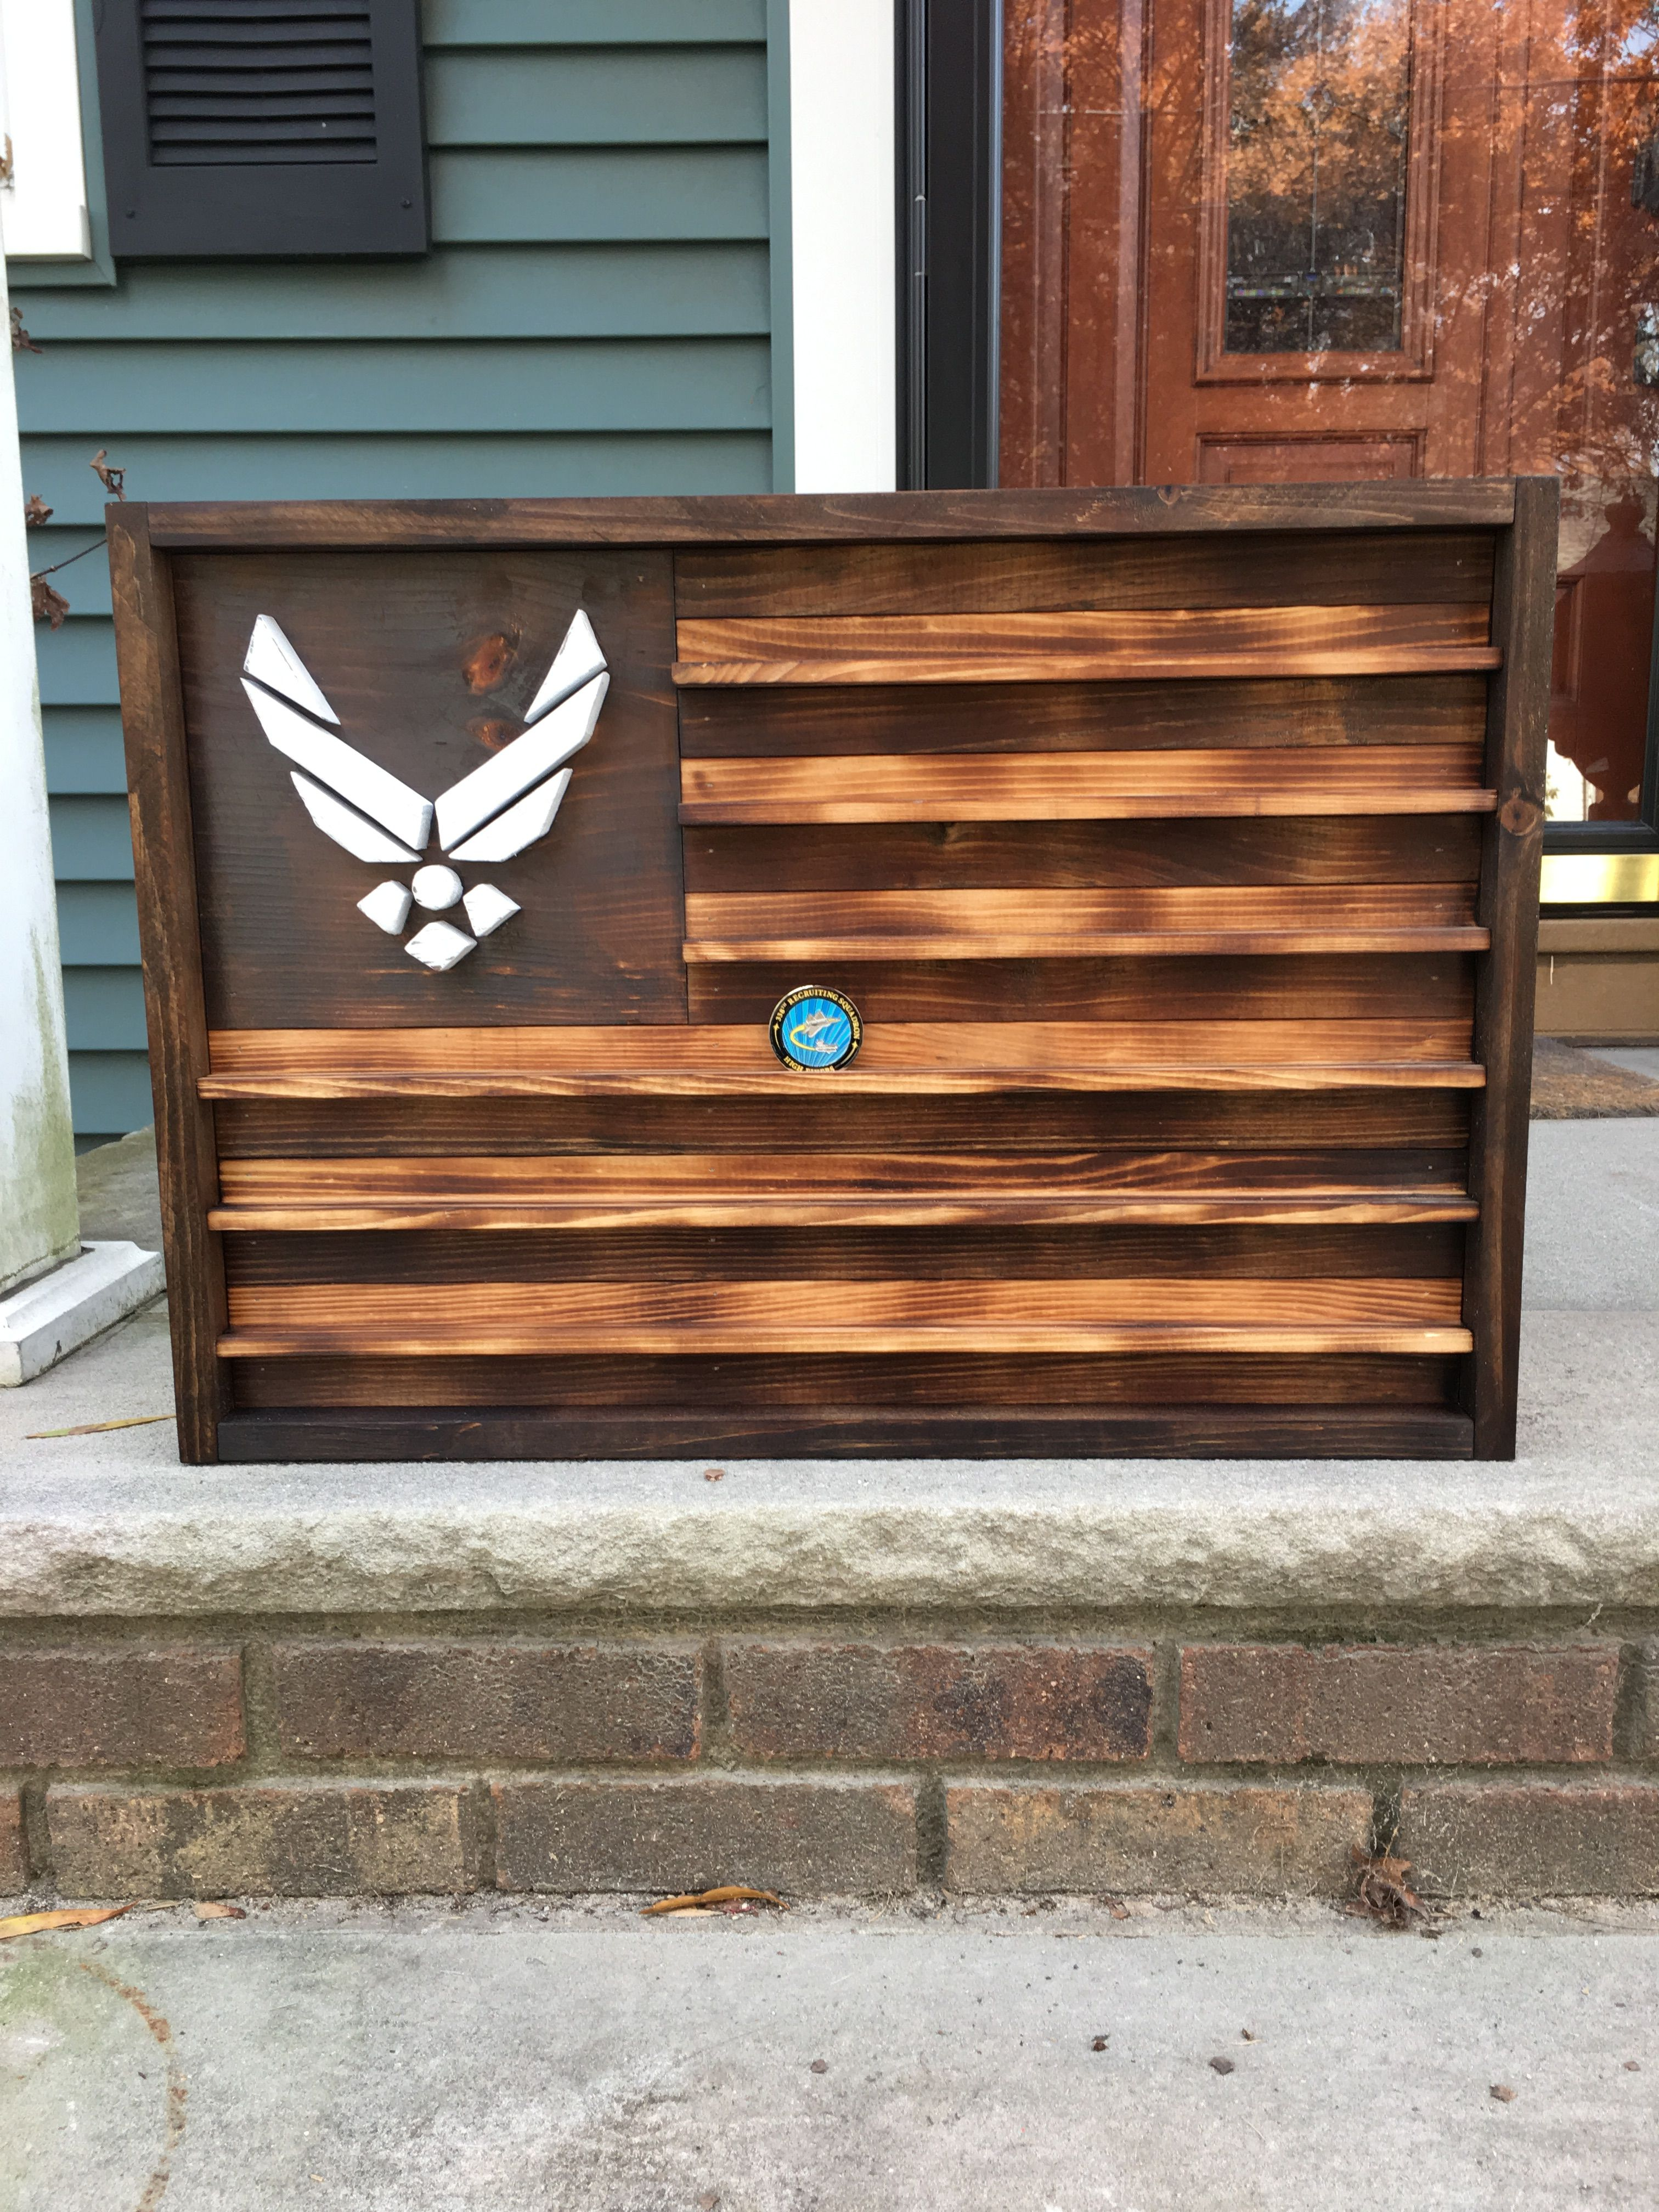 Rustic Air Force Flag/Coin holder Air force gifts